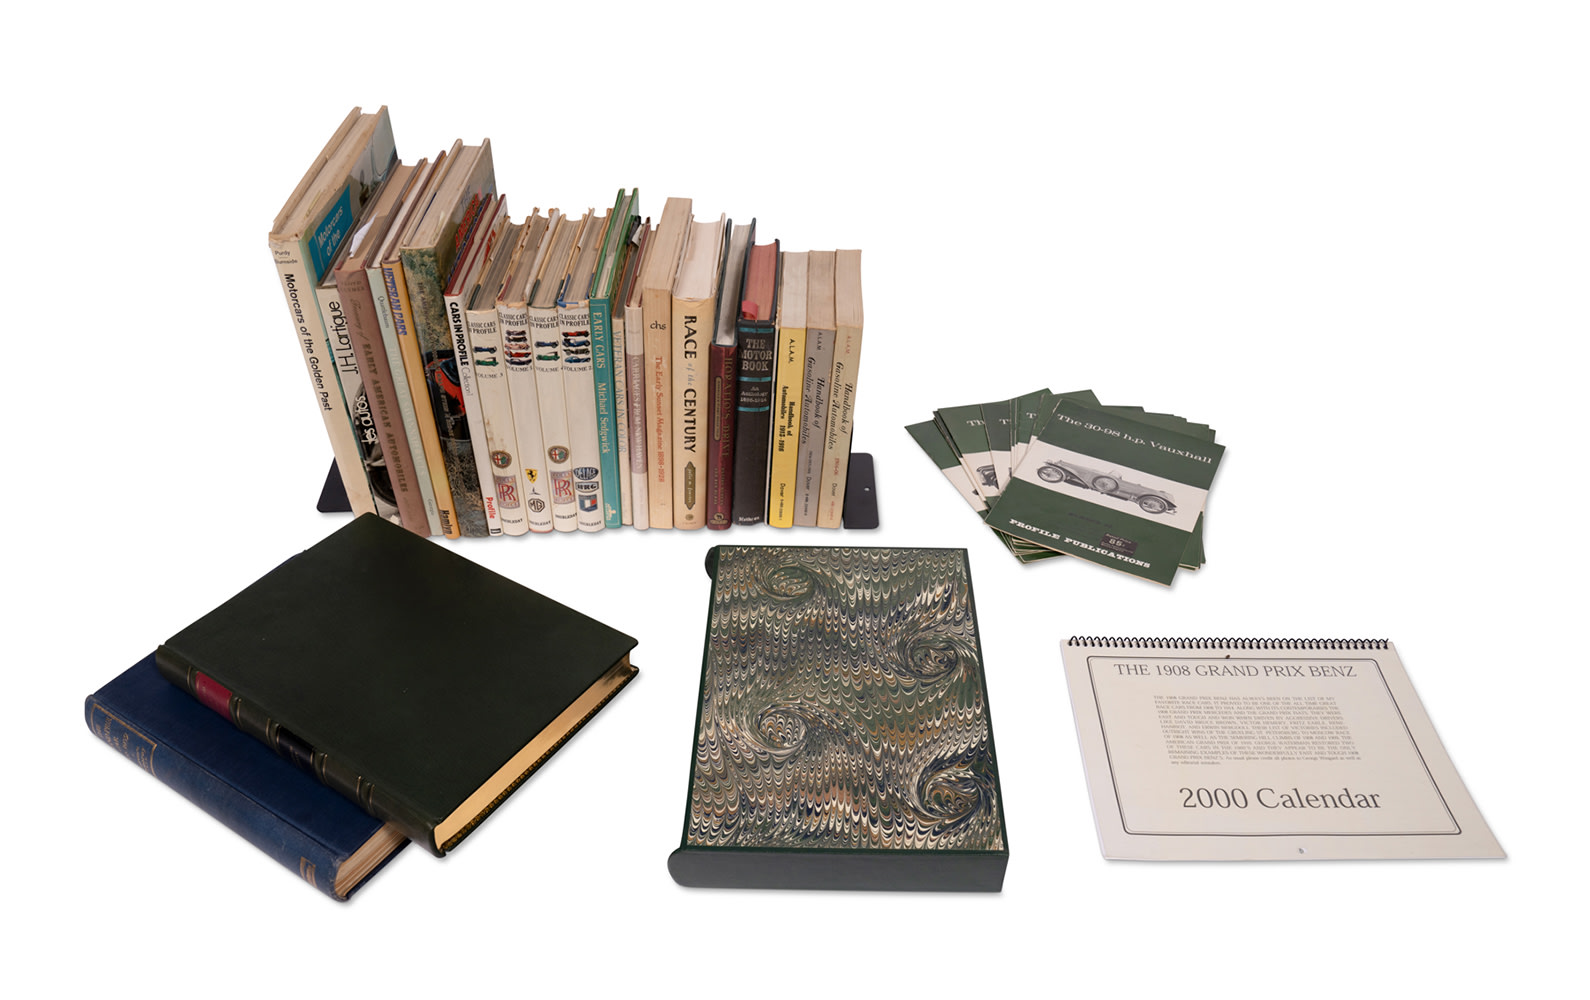 Assorted Books and Publications on Prewar Motoring